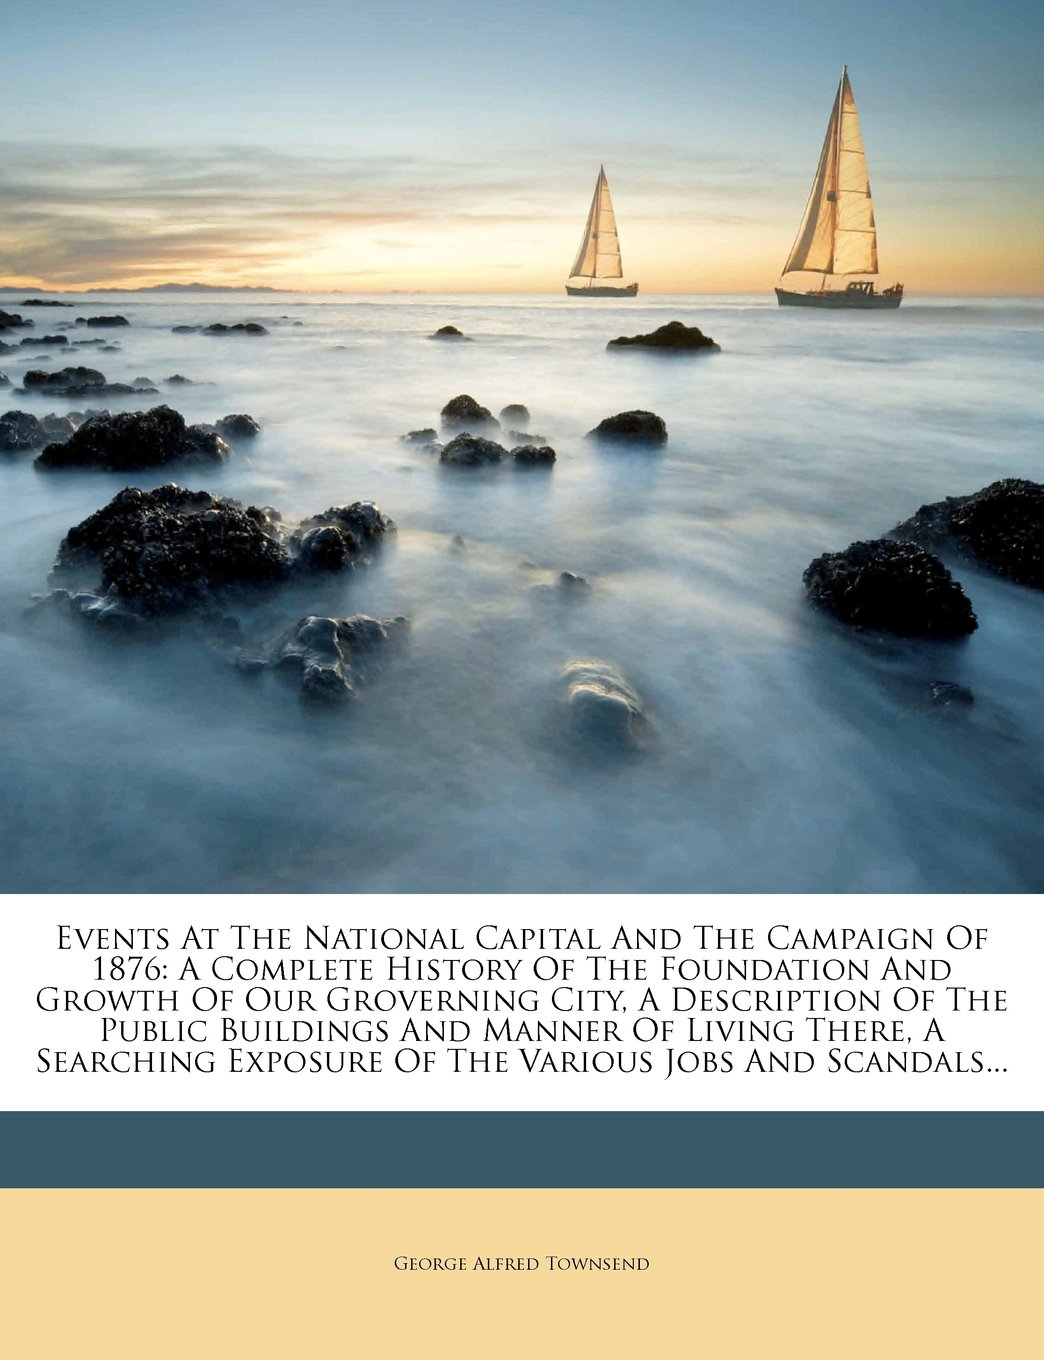 Download Events At The National Capital And The Campaign Of 1876: A Complete History Of The Foundation And Growth Of Our Groverning City, A Description Of The ... Exposure Of The Various Jobs And Scandals... pdf epub